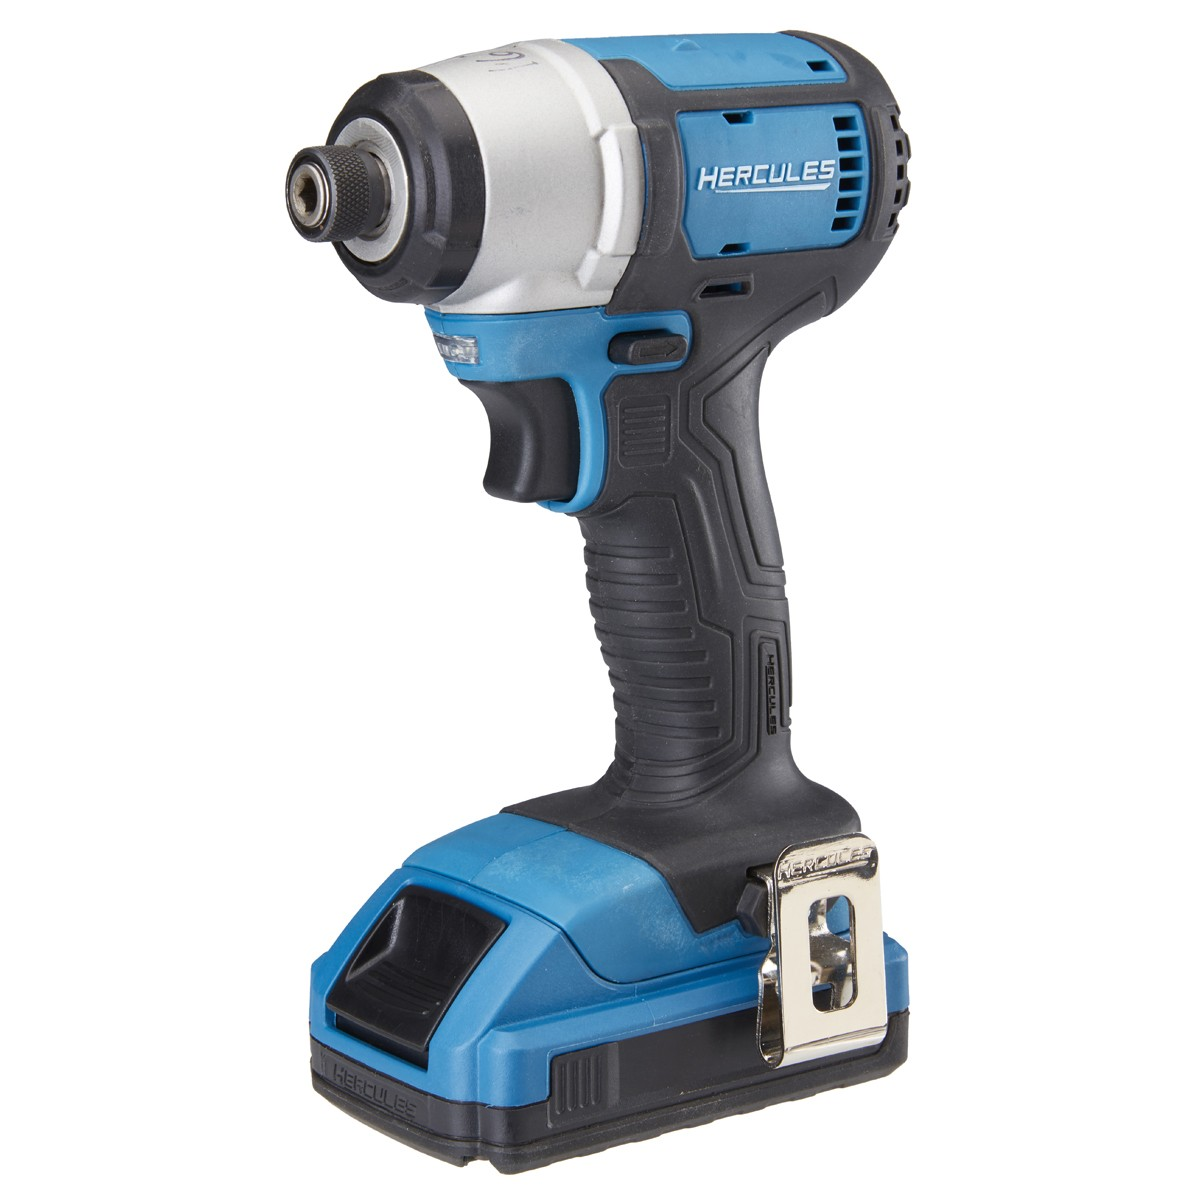 Hercules 20V Cordless Power Tools - Is Harbor Freight Selling Blue on harbor freight floor fans, harbor freight drill presses, harbor freight milling machine accessories, harbor freight multi purpose ladders, harbor freight orbital sander, harbor freight bit sharpener, harbor freight wire crimpers, harbor freight cable cutters, harbor freight meat slicer, harbor freight 6 ton jack stands,